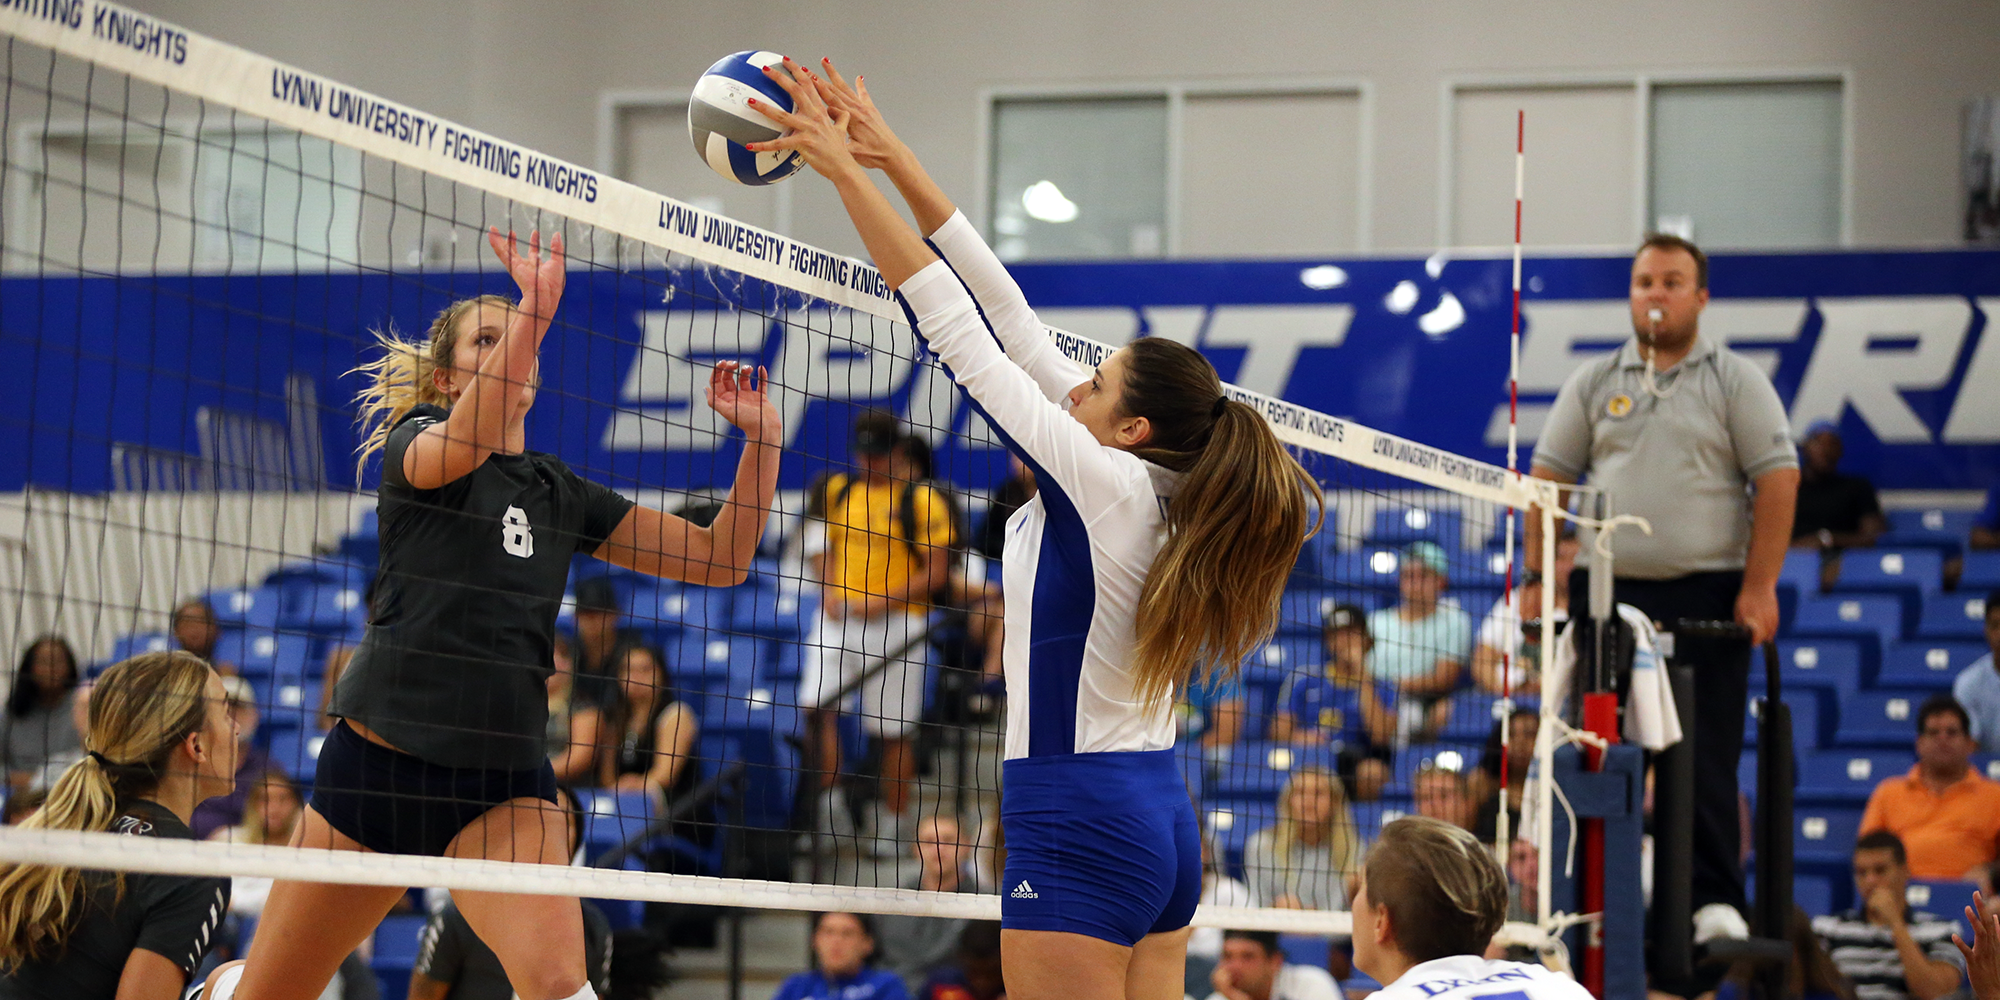 Volleyball Sunk at No. 4 Sailfish in SSC Opener